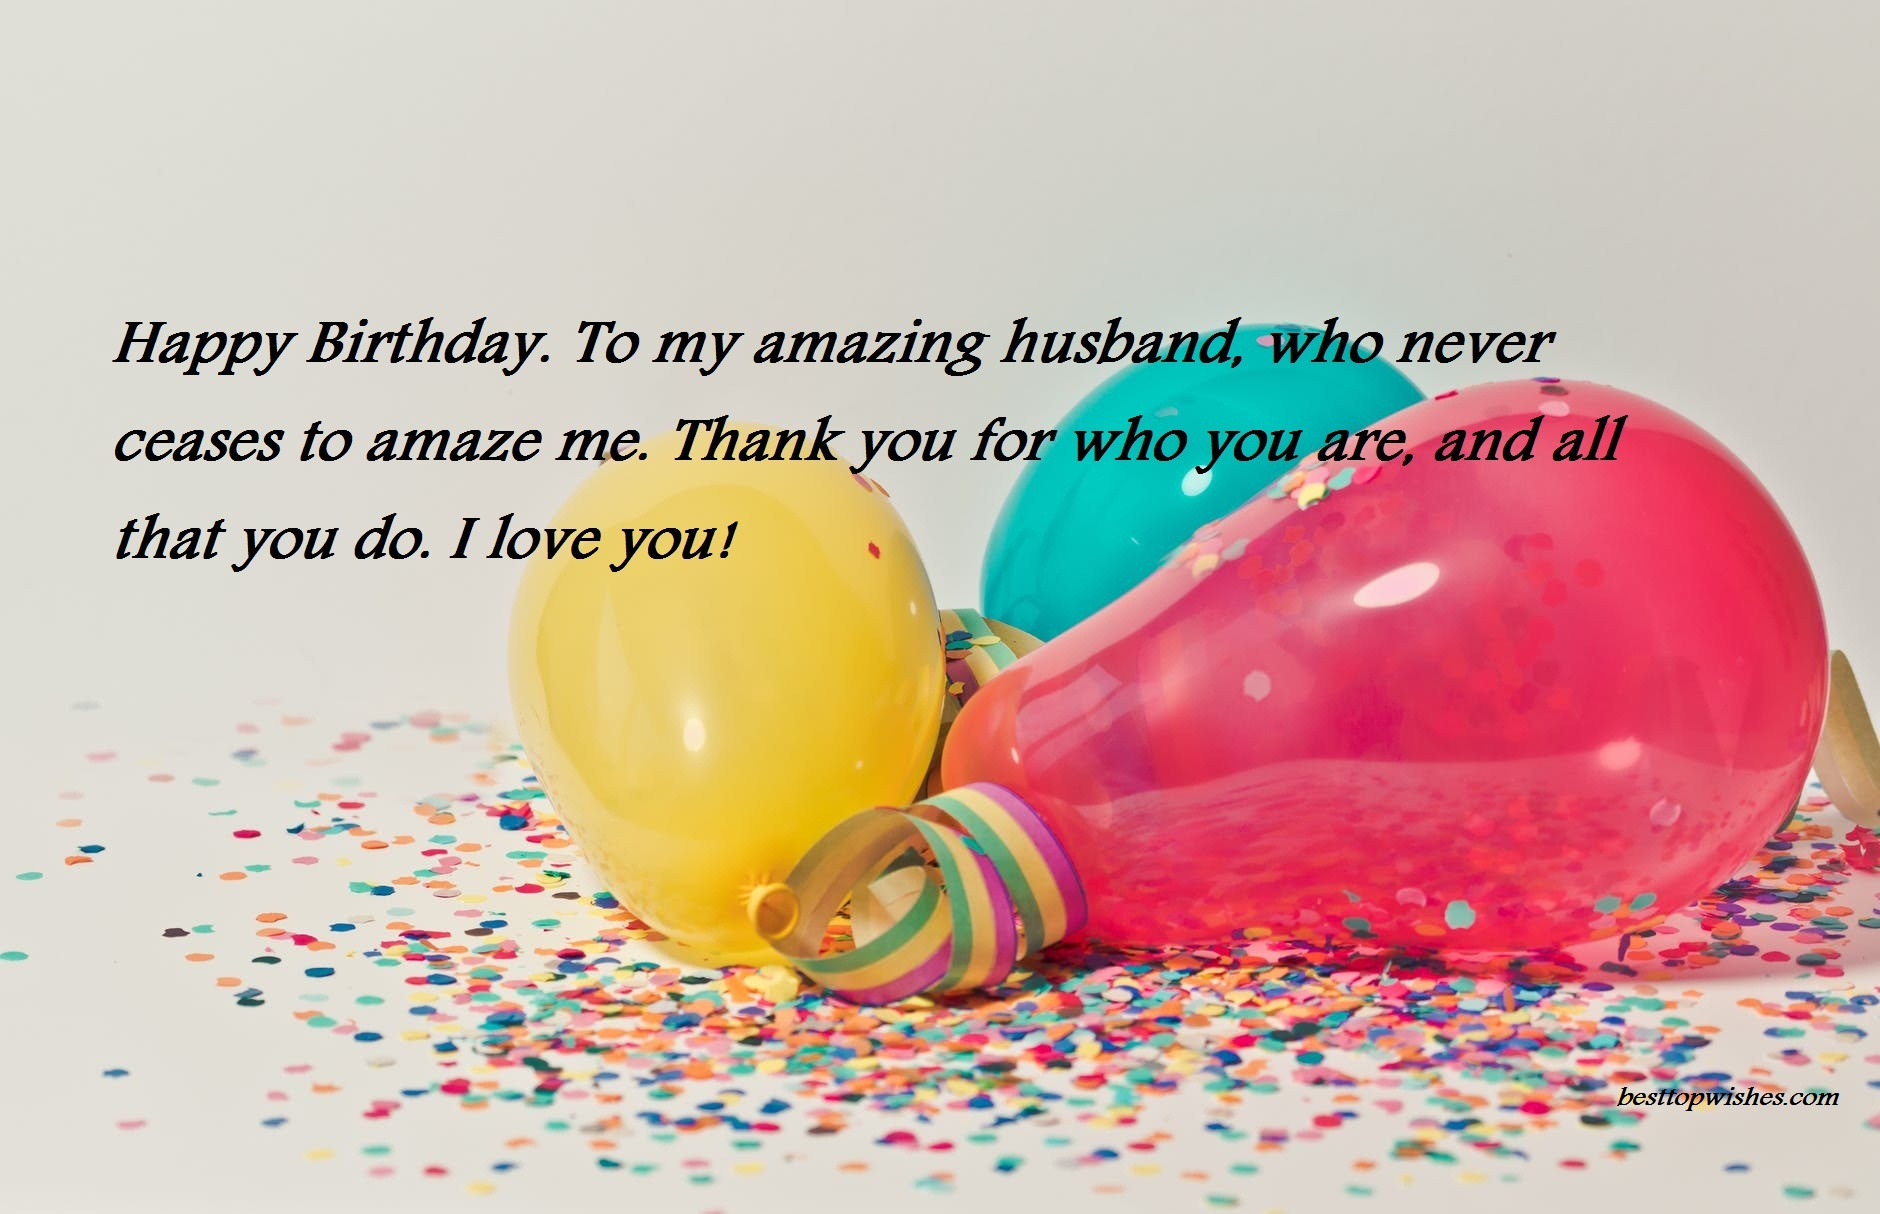 Funny Happy Birthday Wishes for Wife